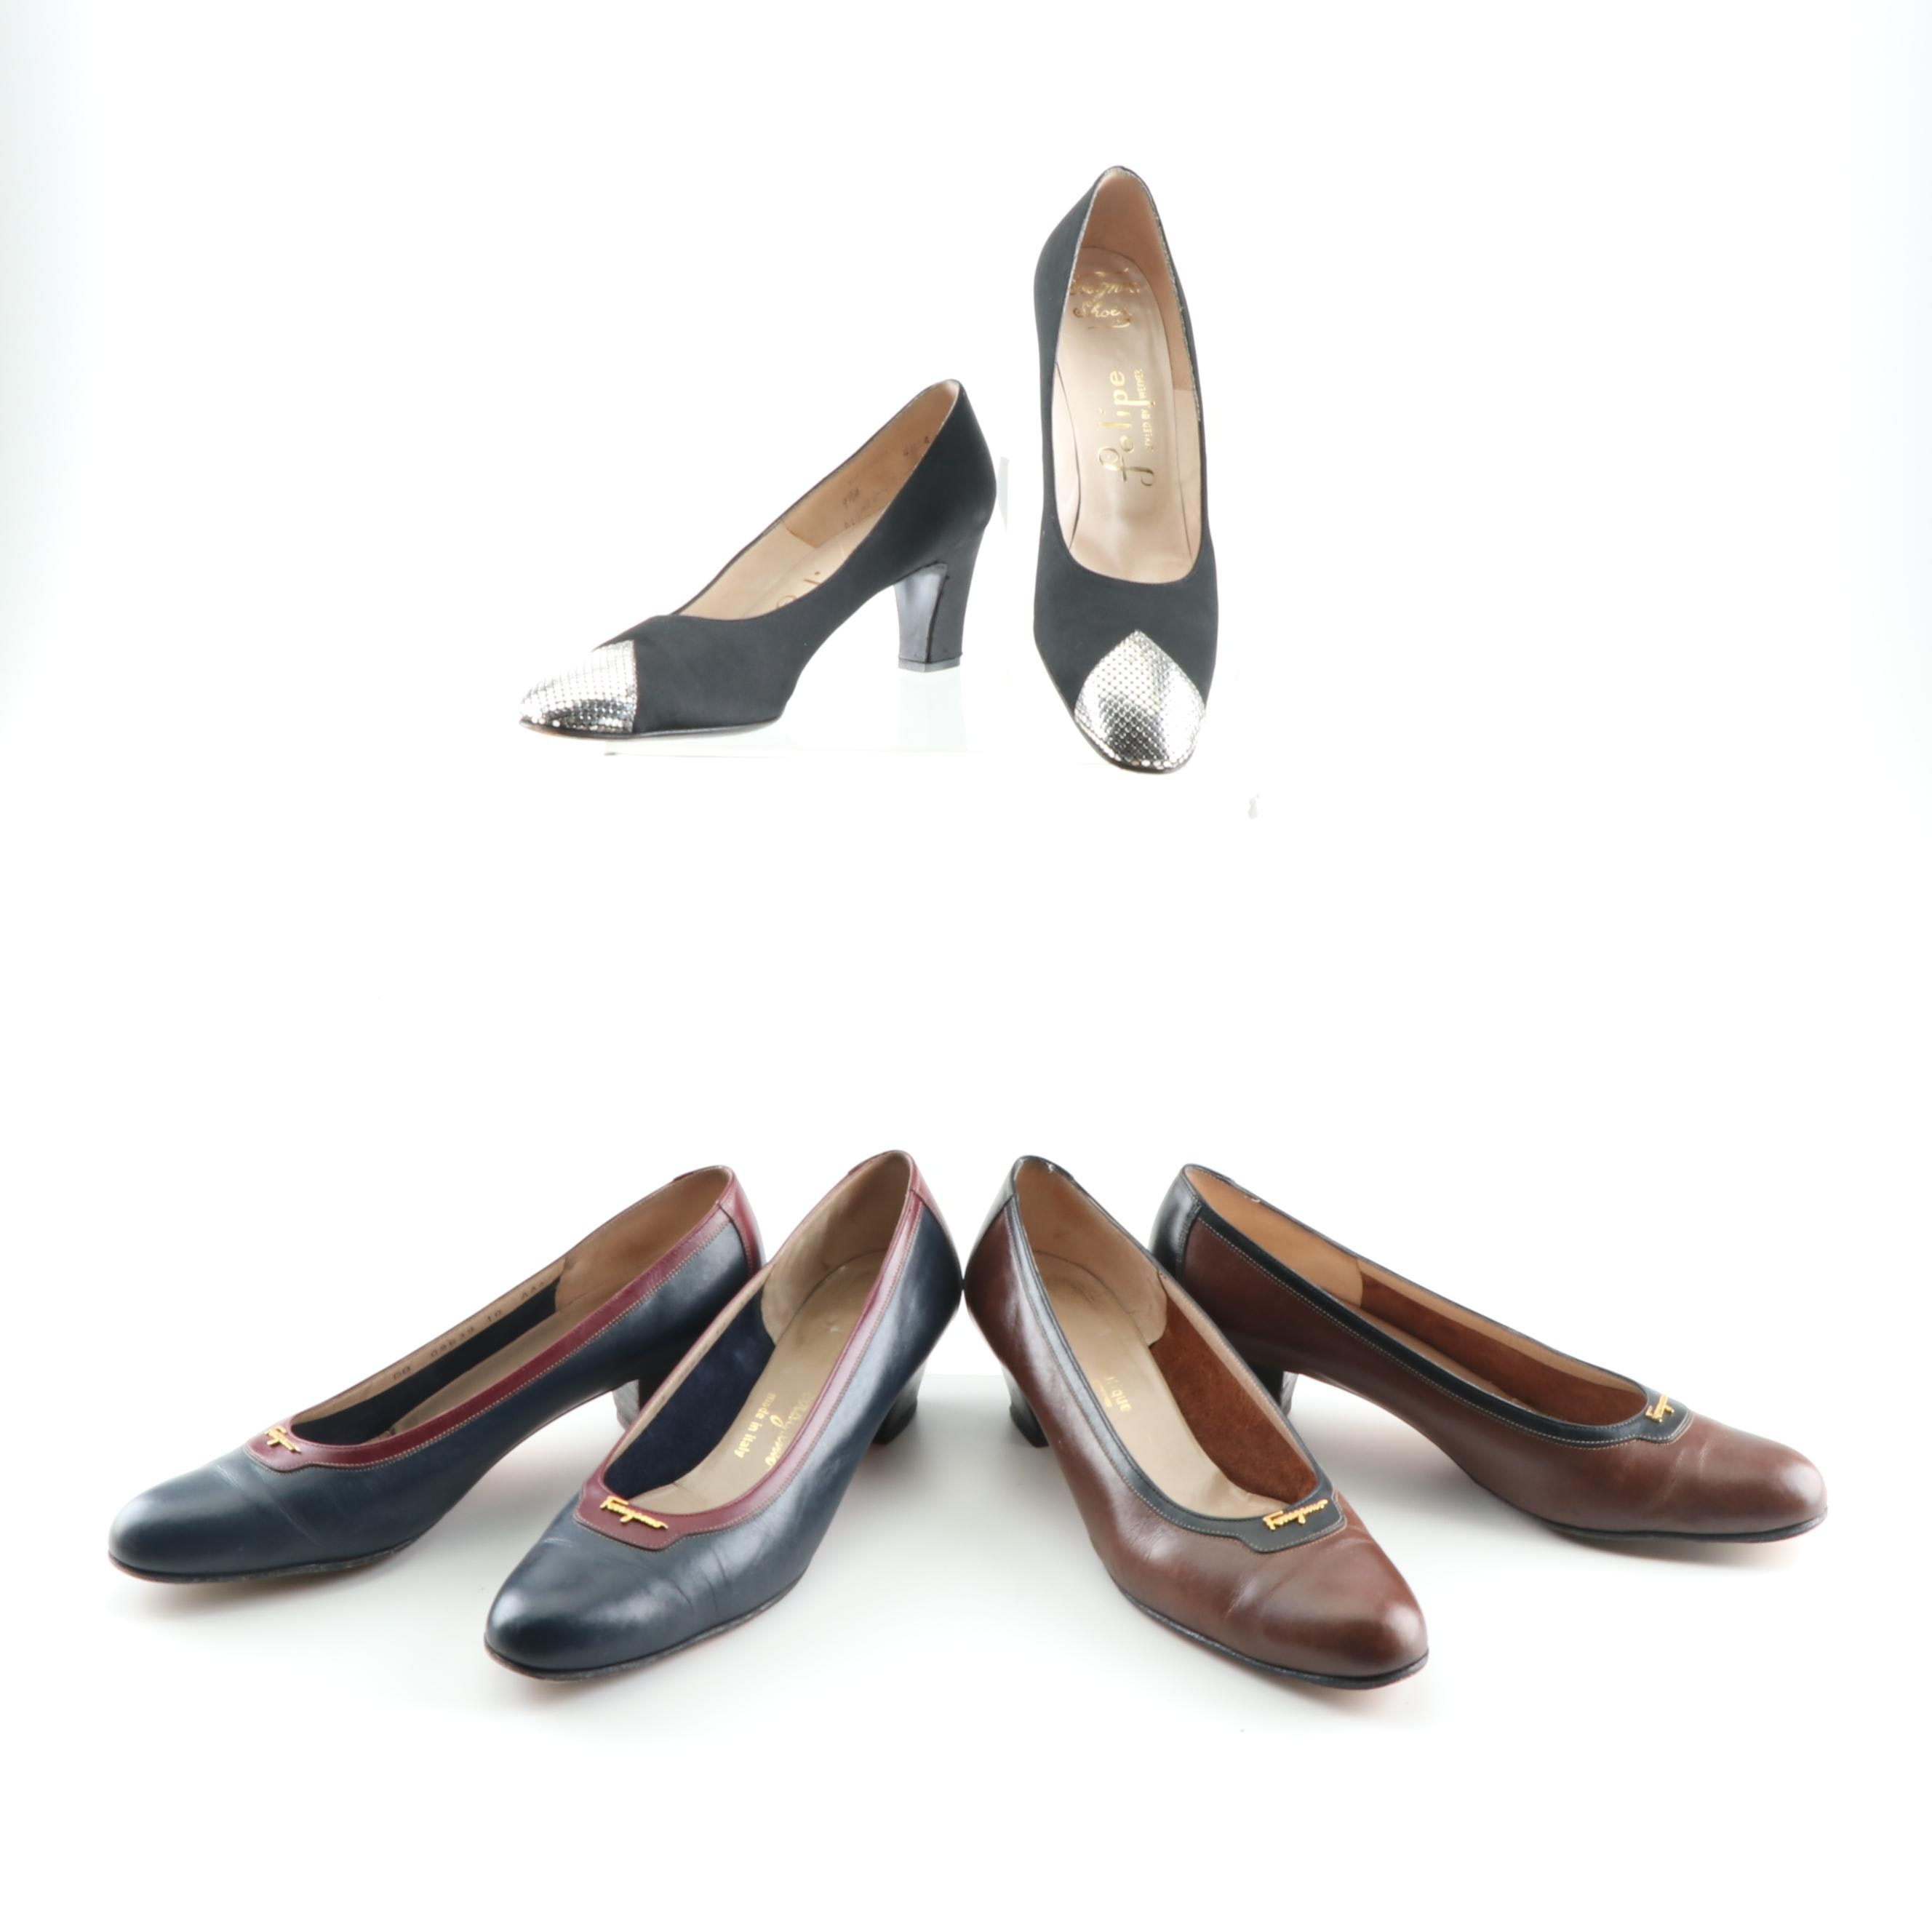 Women's Leather and Satin Pumps including Salvatore Ferragamo